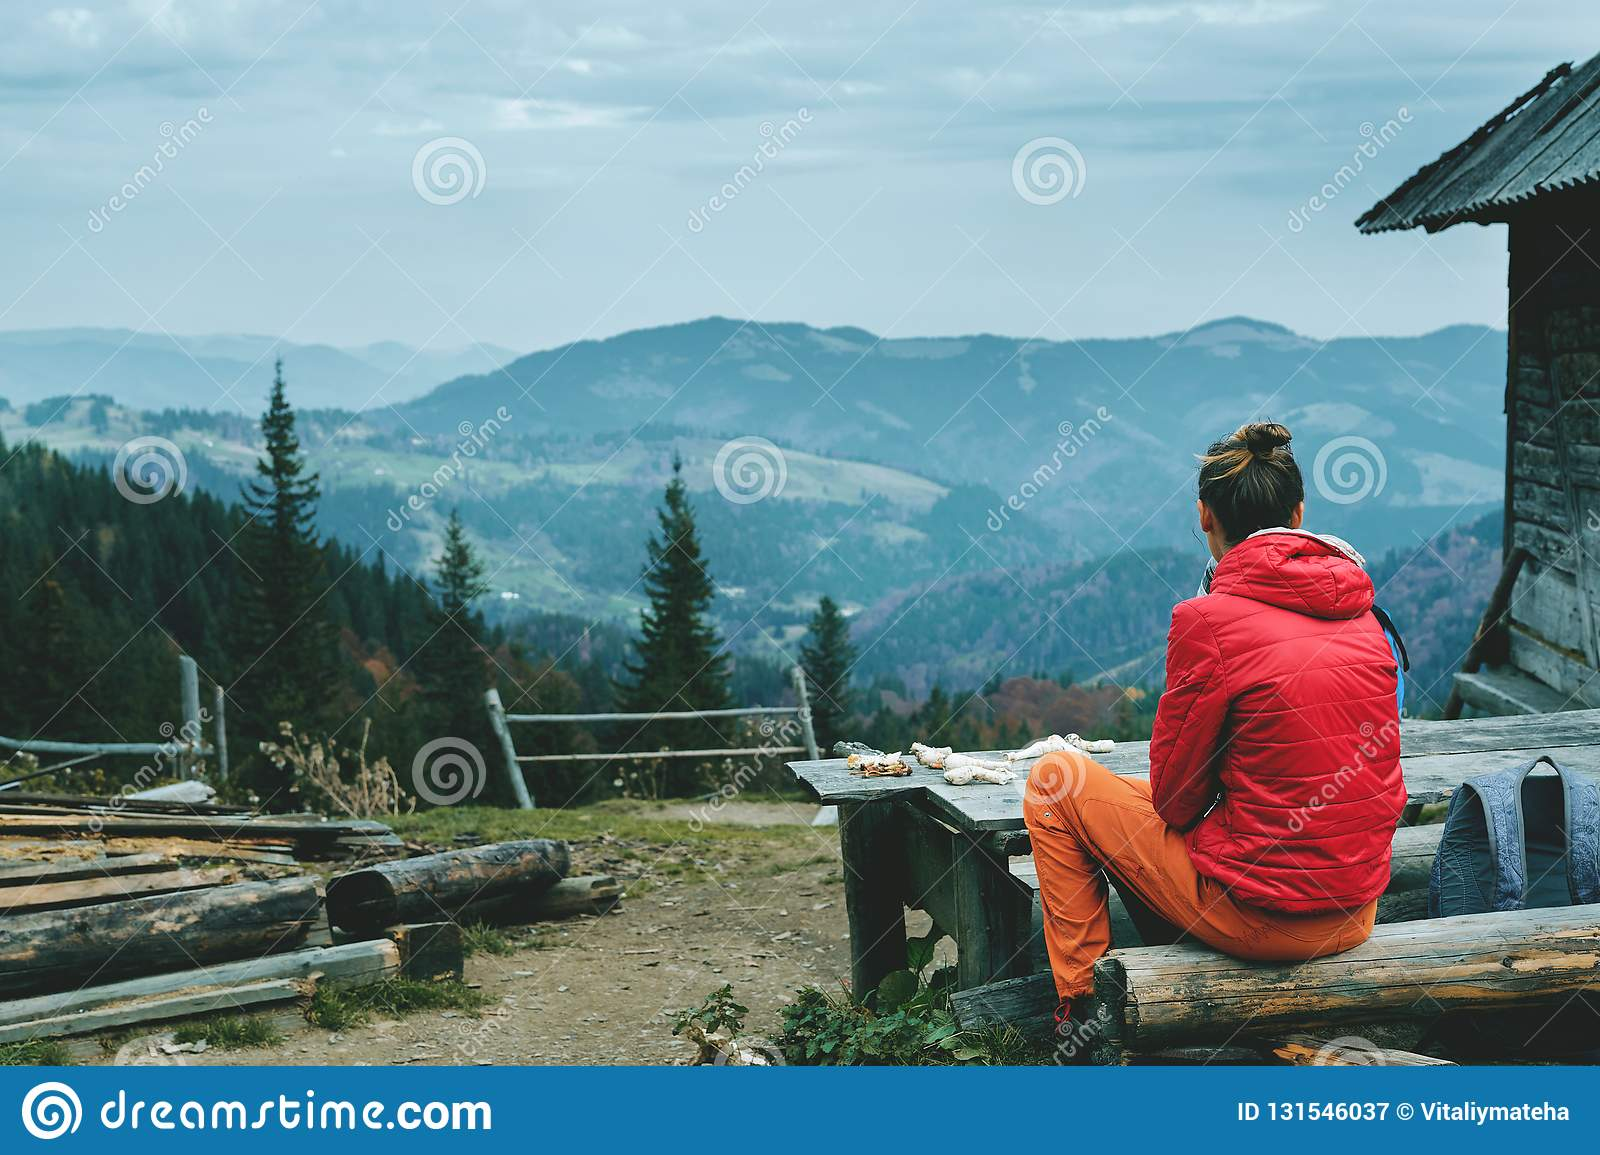 Woman hiker in red jacket and orange pants, sitting on the wooden bench near mountain hut with mountains on background